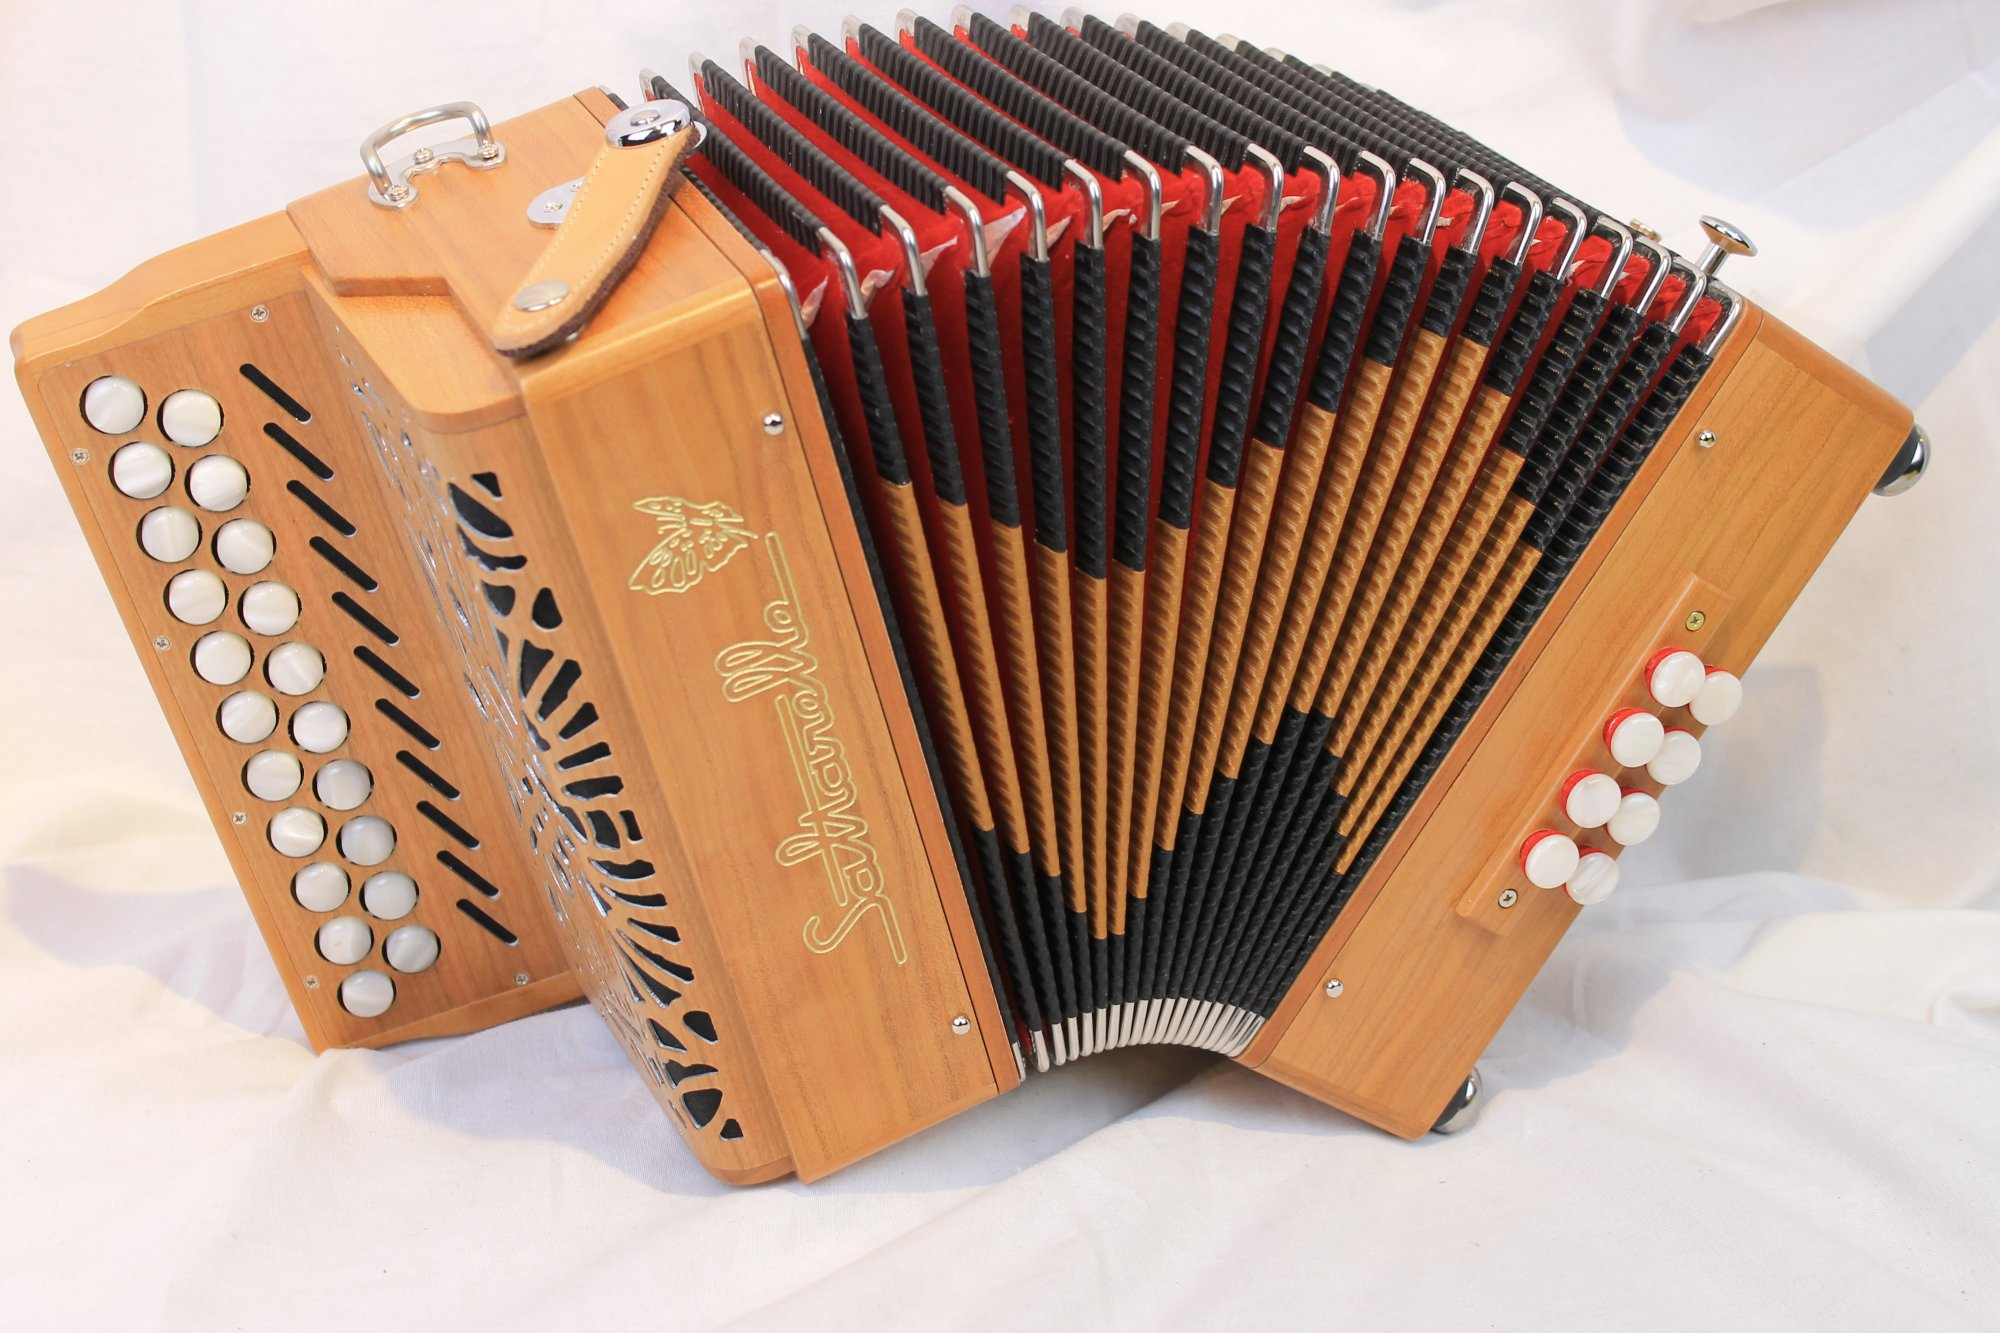 NEW Cherry Saltarelle Aether II Diatonic Button Accordion C#-D MM 21 8